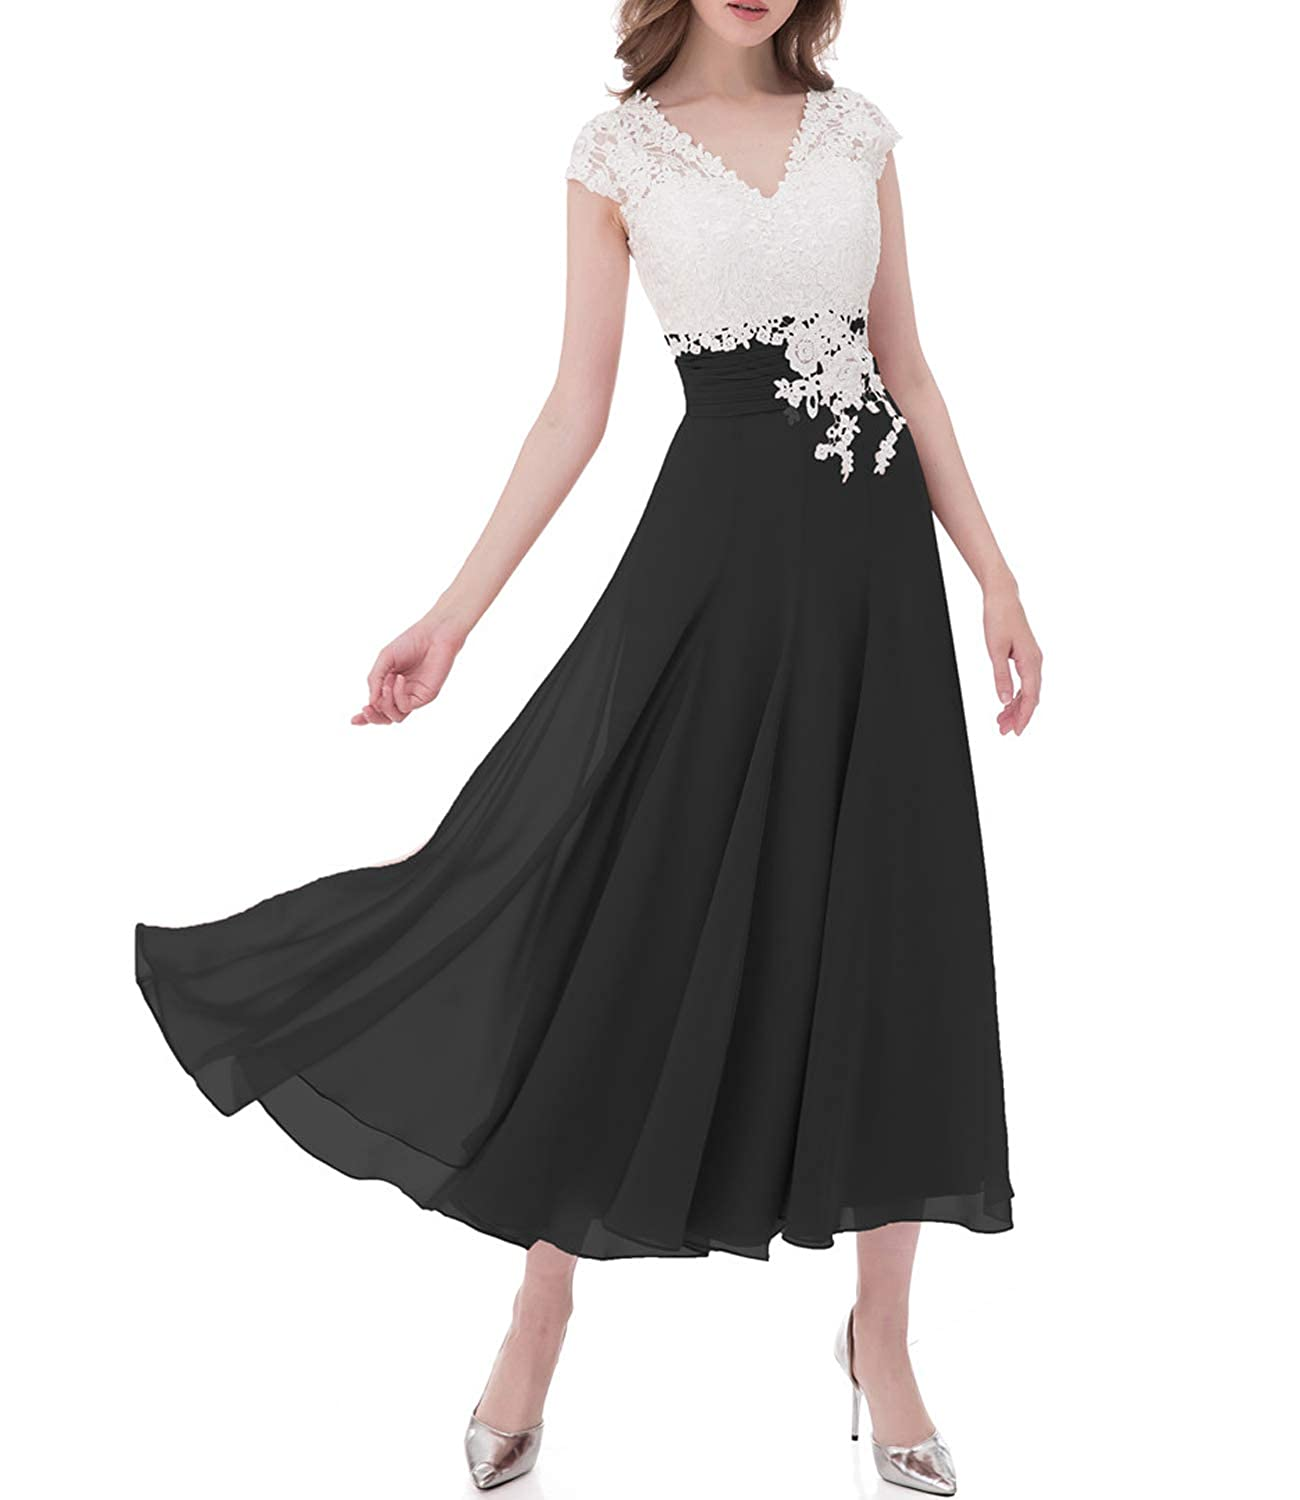 fd25e3b8116726 Newdeve Chiffon Mother Of The Bride Dresses Long Pleated With Rhinestones  Short Sleeve